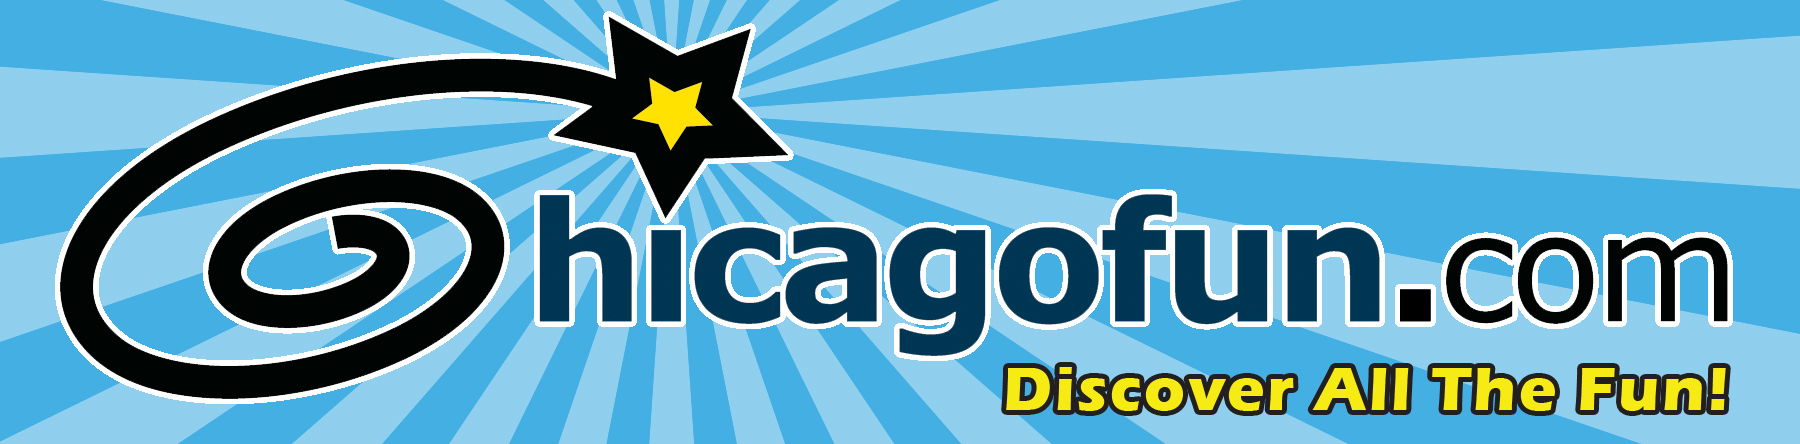 chicago fun logo blue